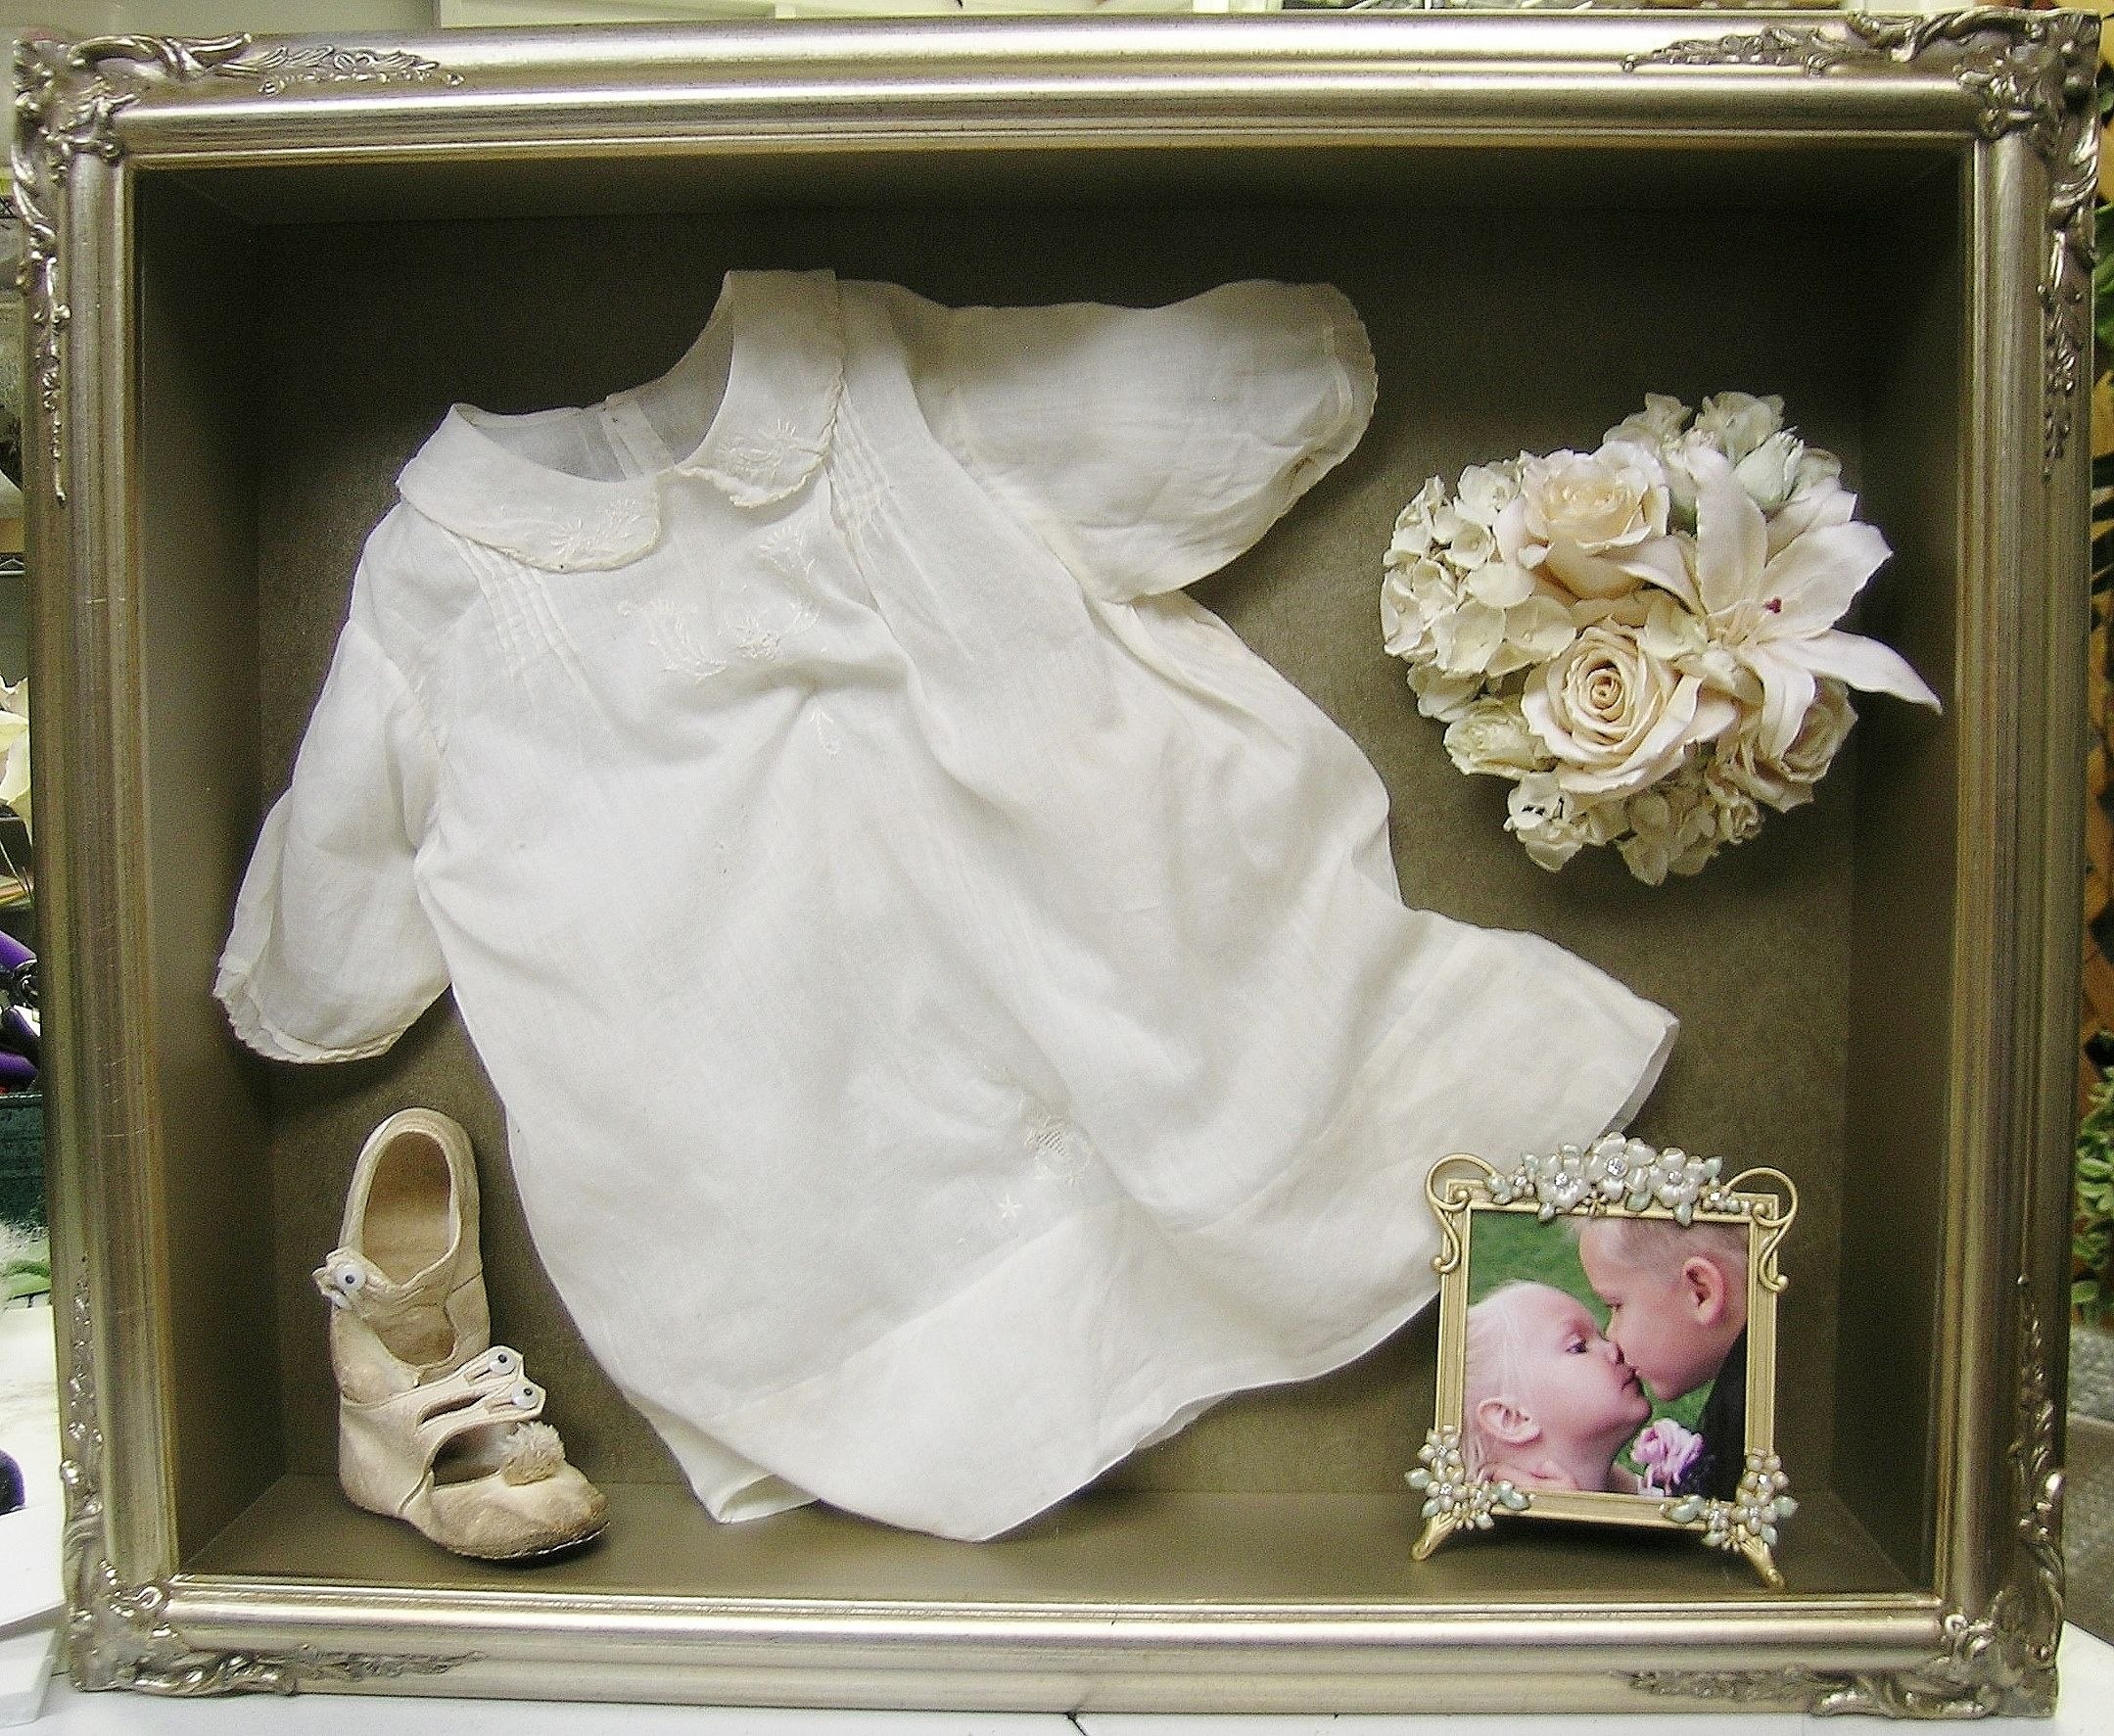 Christening gown with freezedried flowers framed by floral